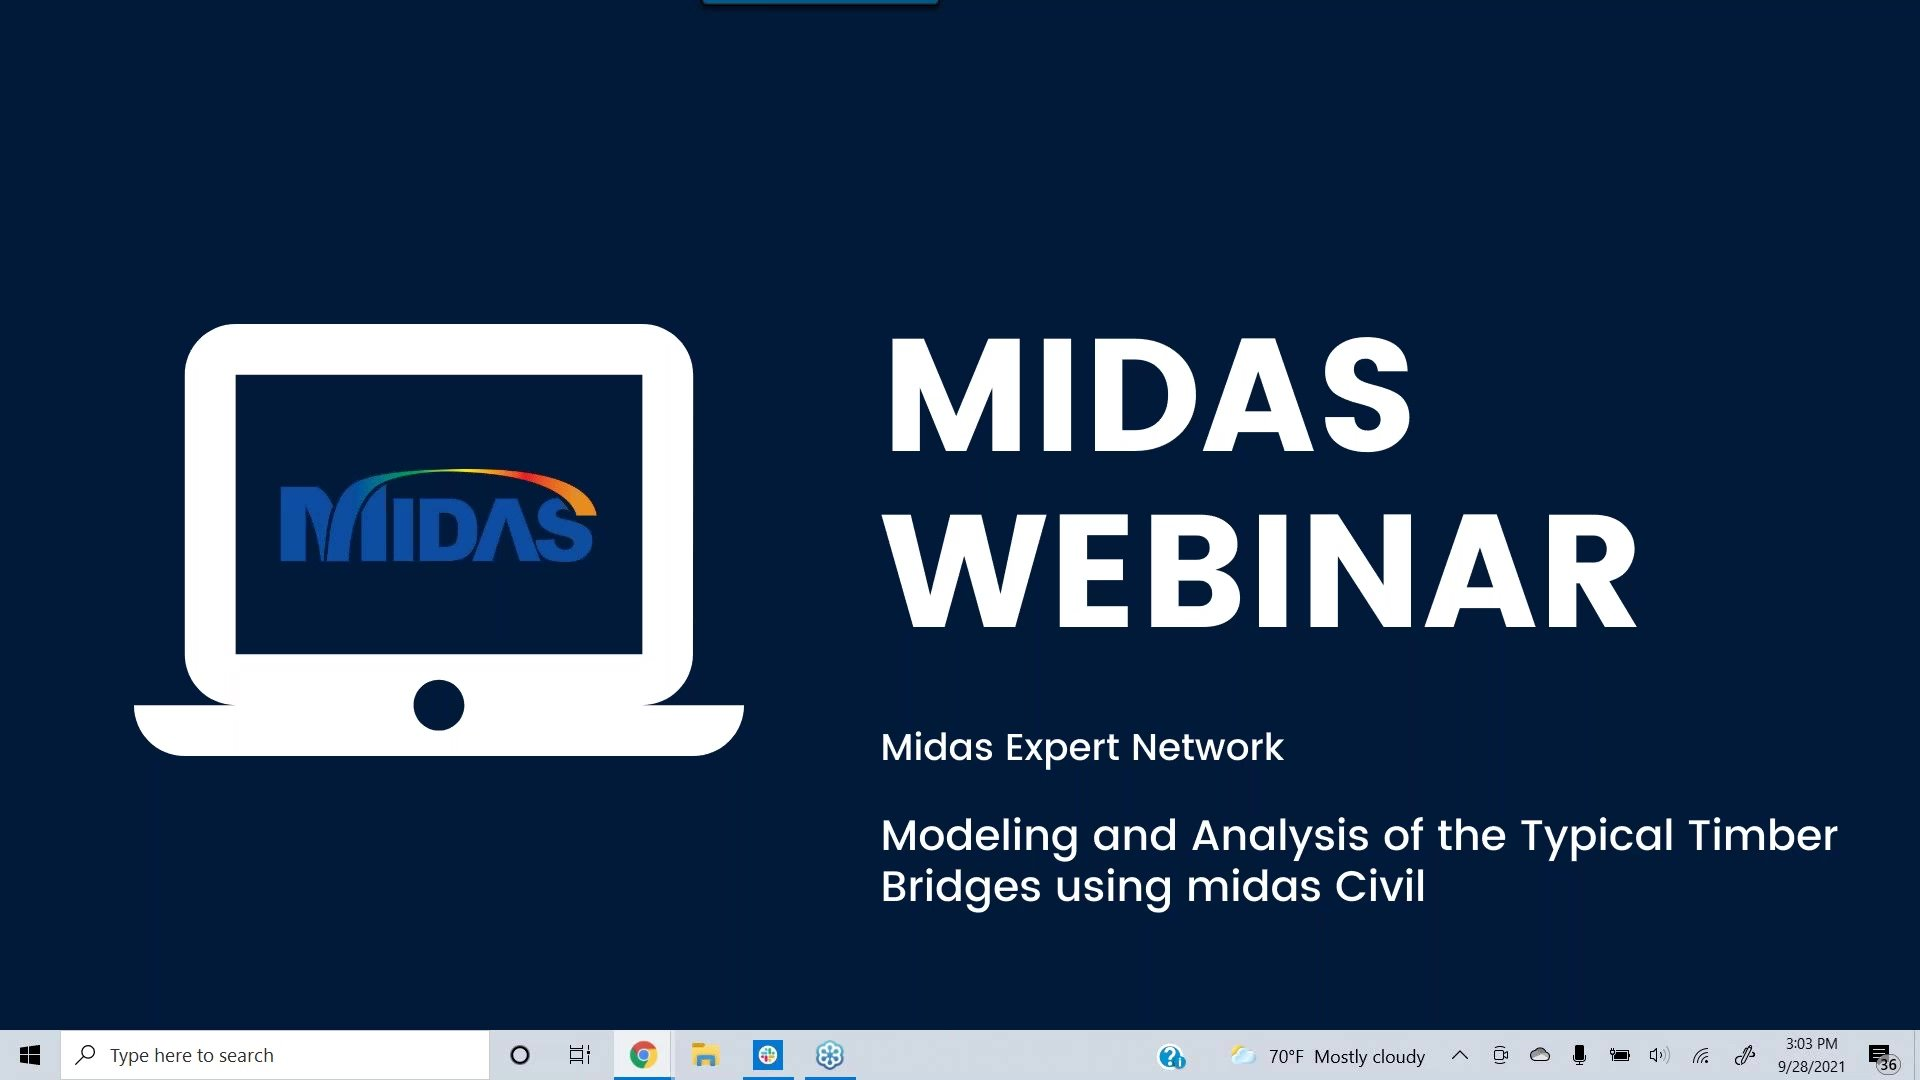 Webinar: Midas Expert Session: Modeling and Analysis of the Typical Timber Bridges using midas Civil